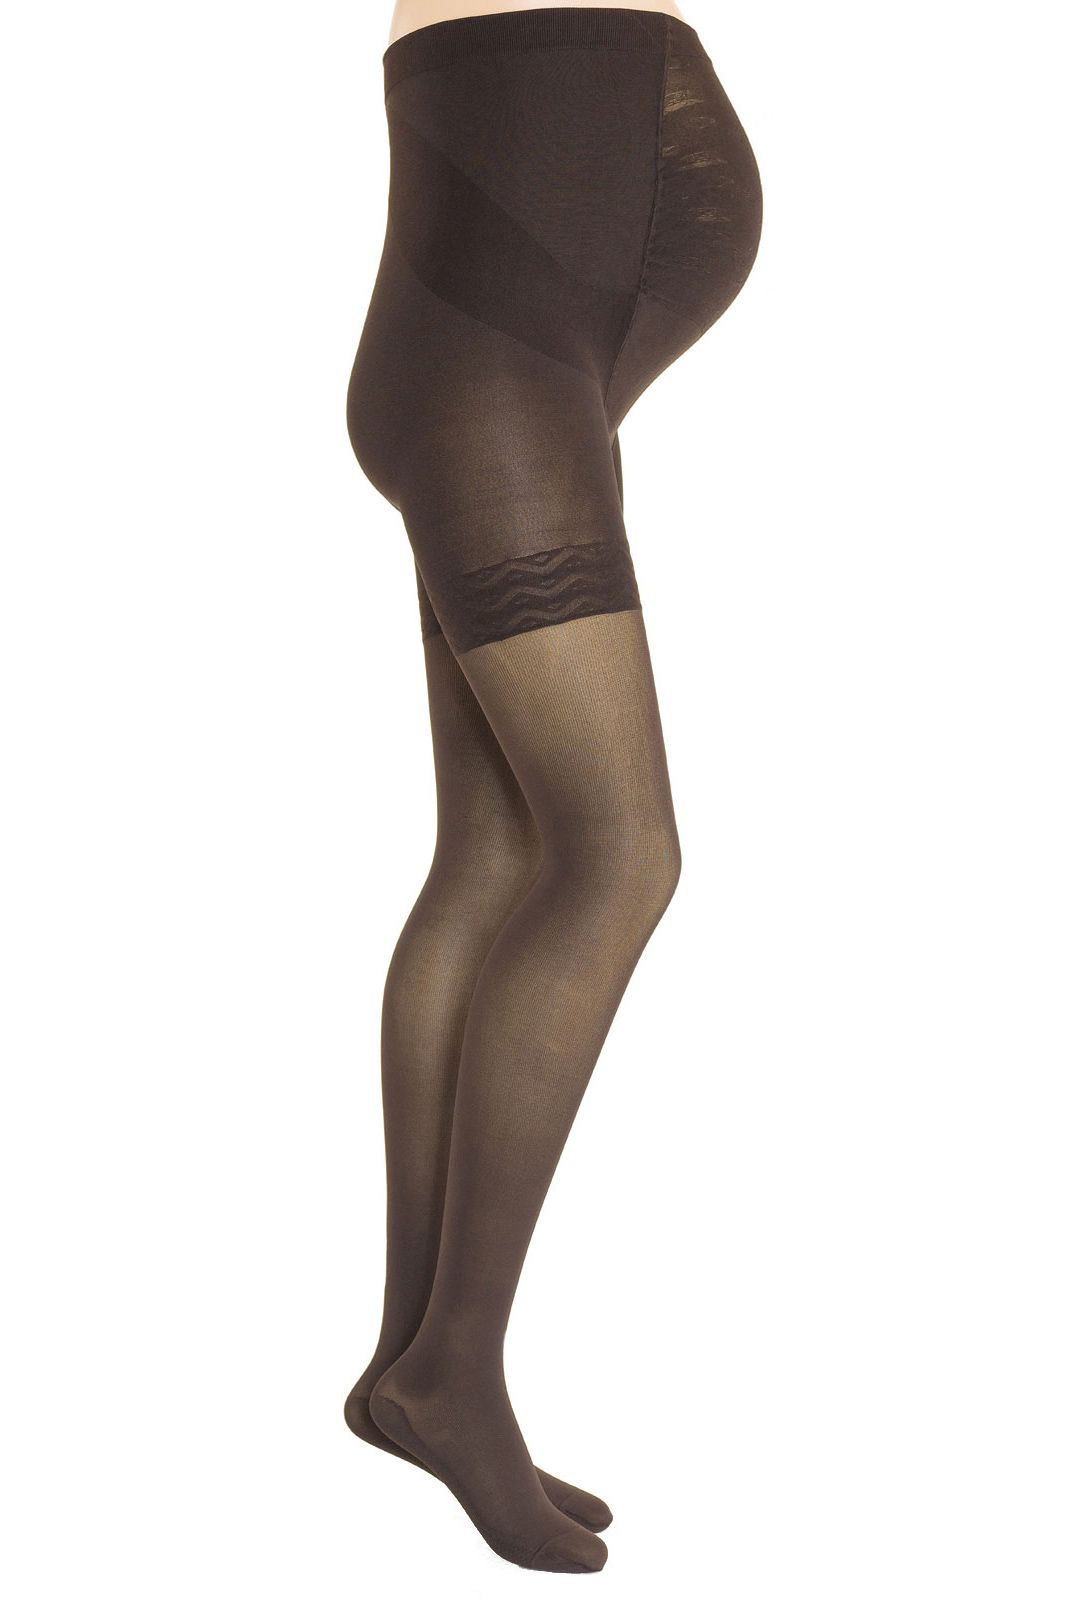 f782a1f37793d Solidea Wonder Model Maman 140 Opaque Maternity Tights. Moderate Compression  ?